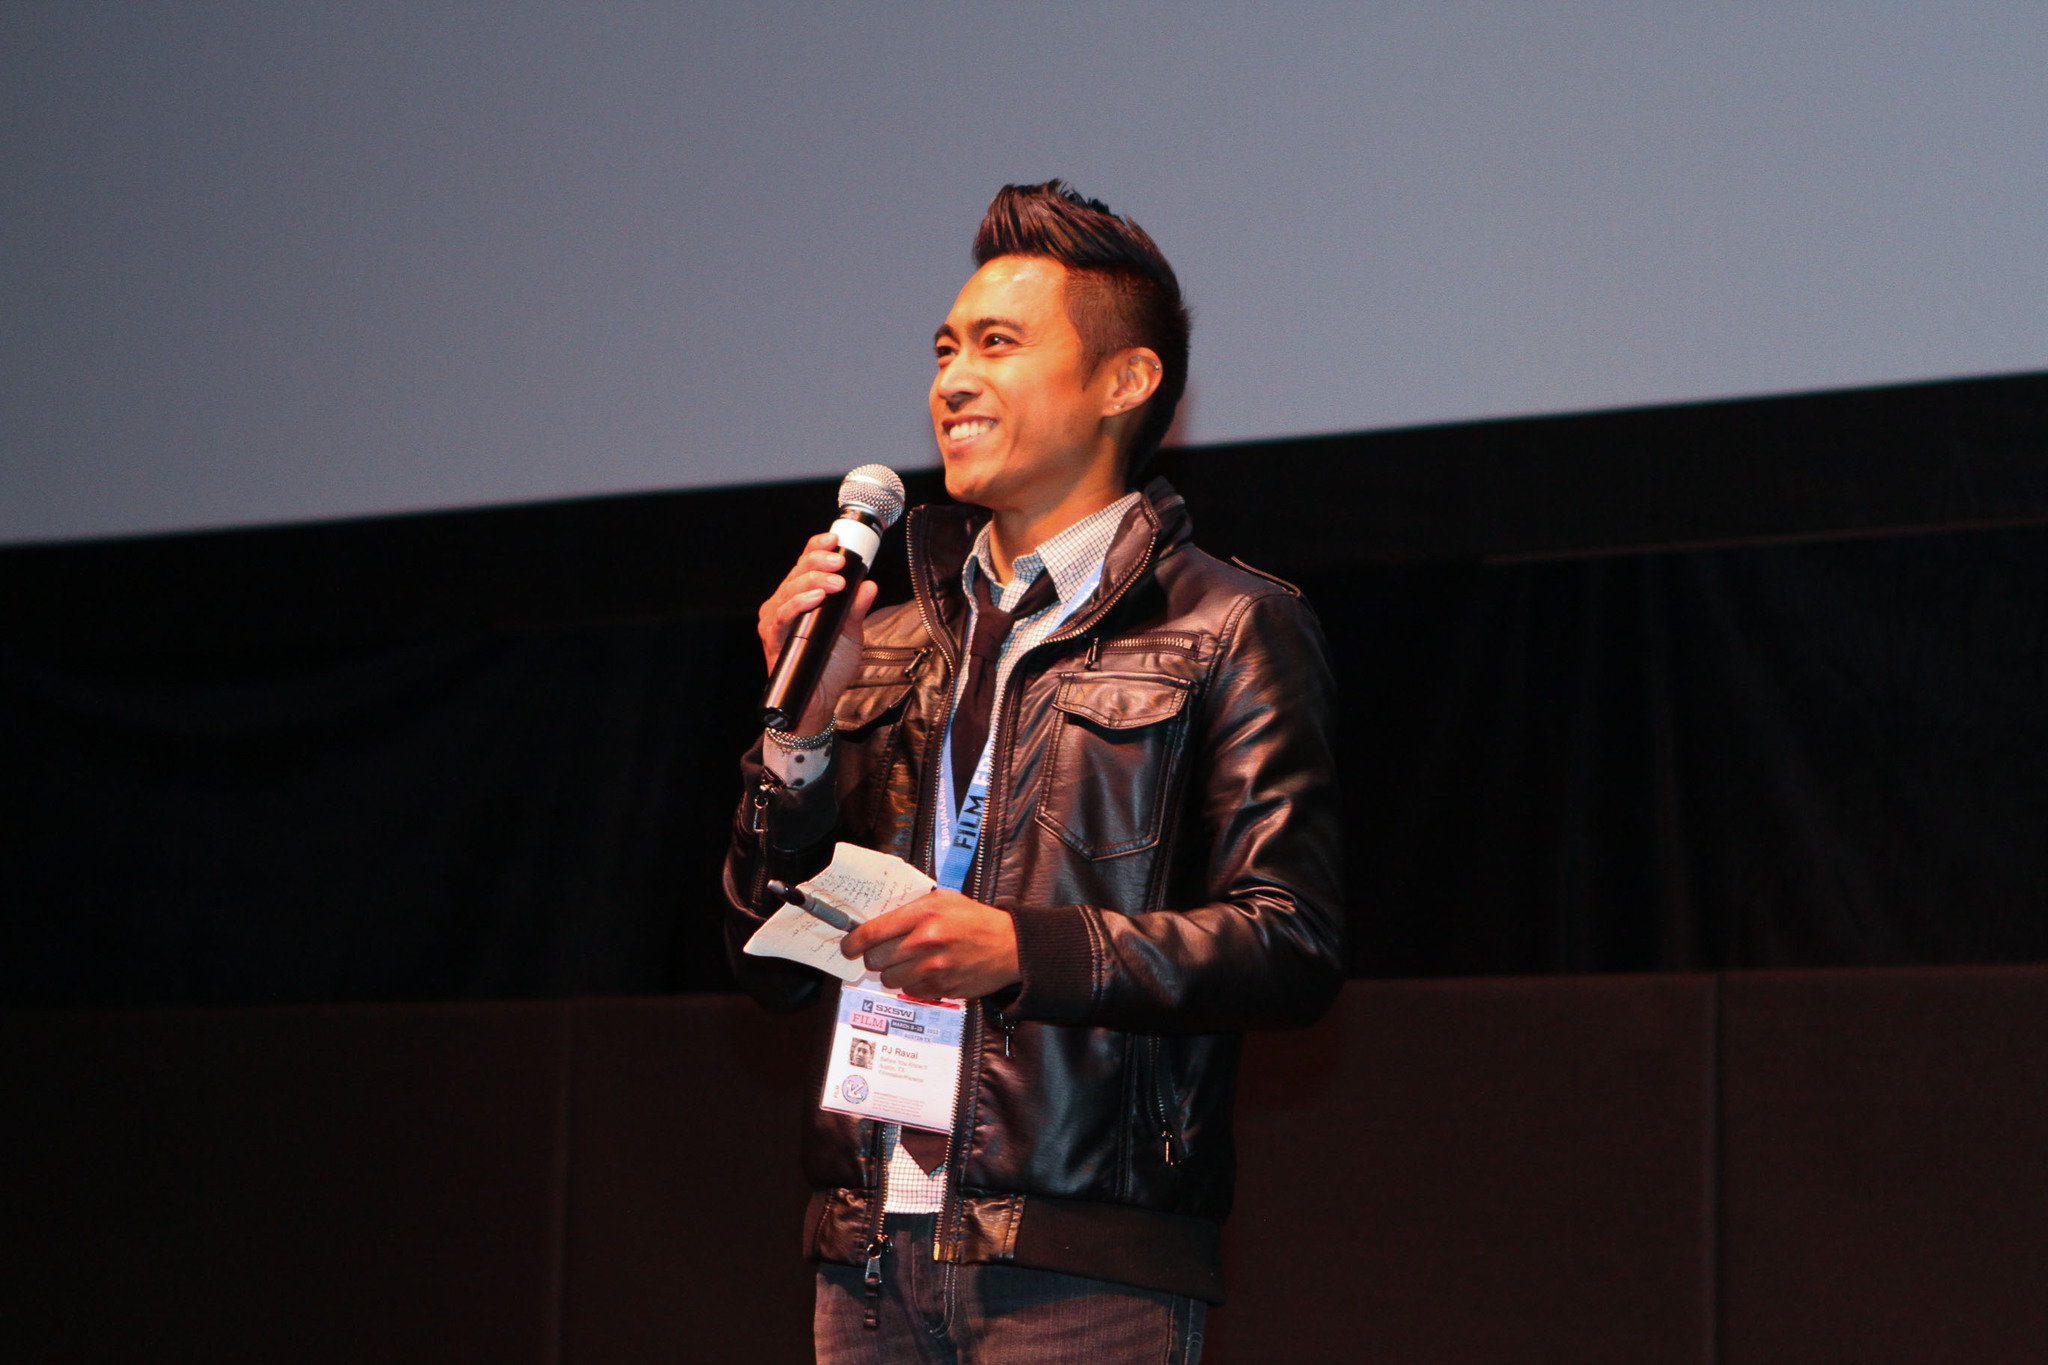 PJ Raval at an event for Before You Know It (2013)